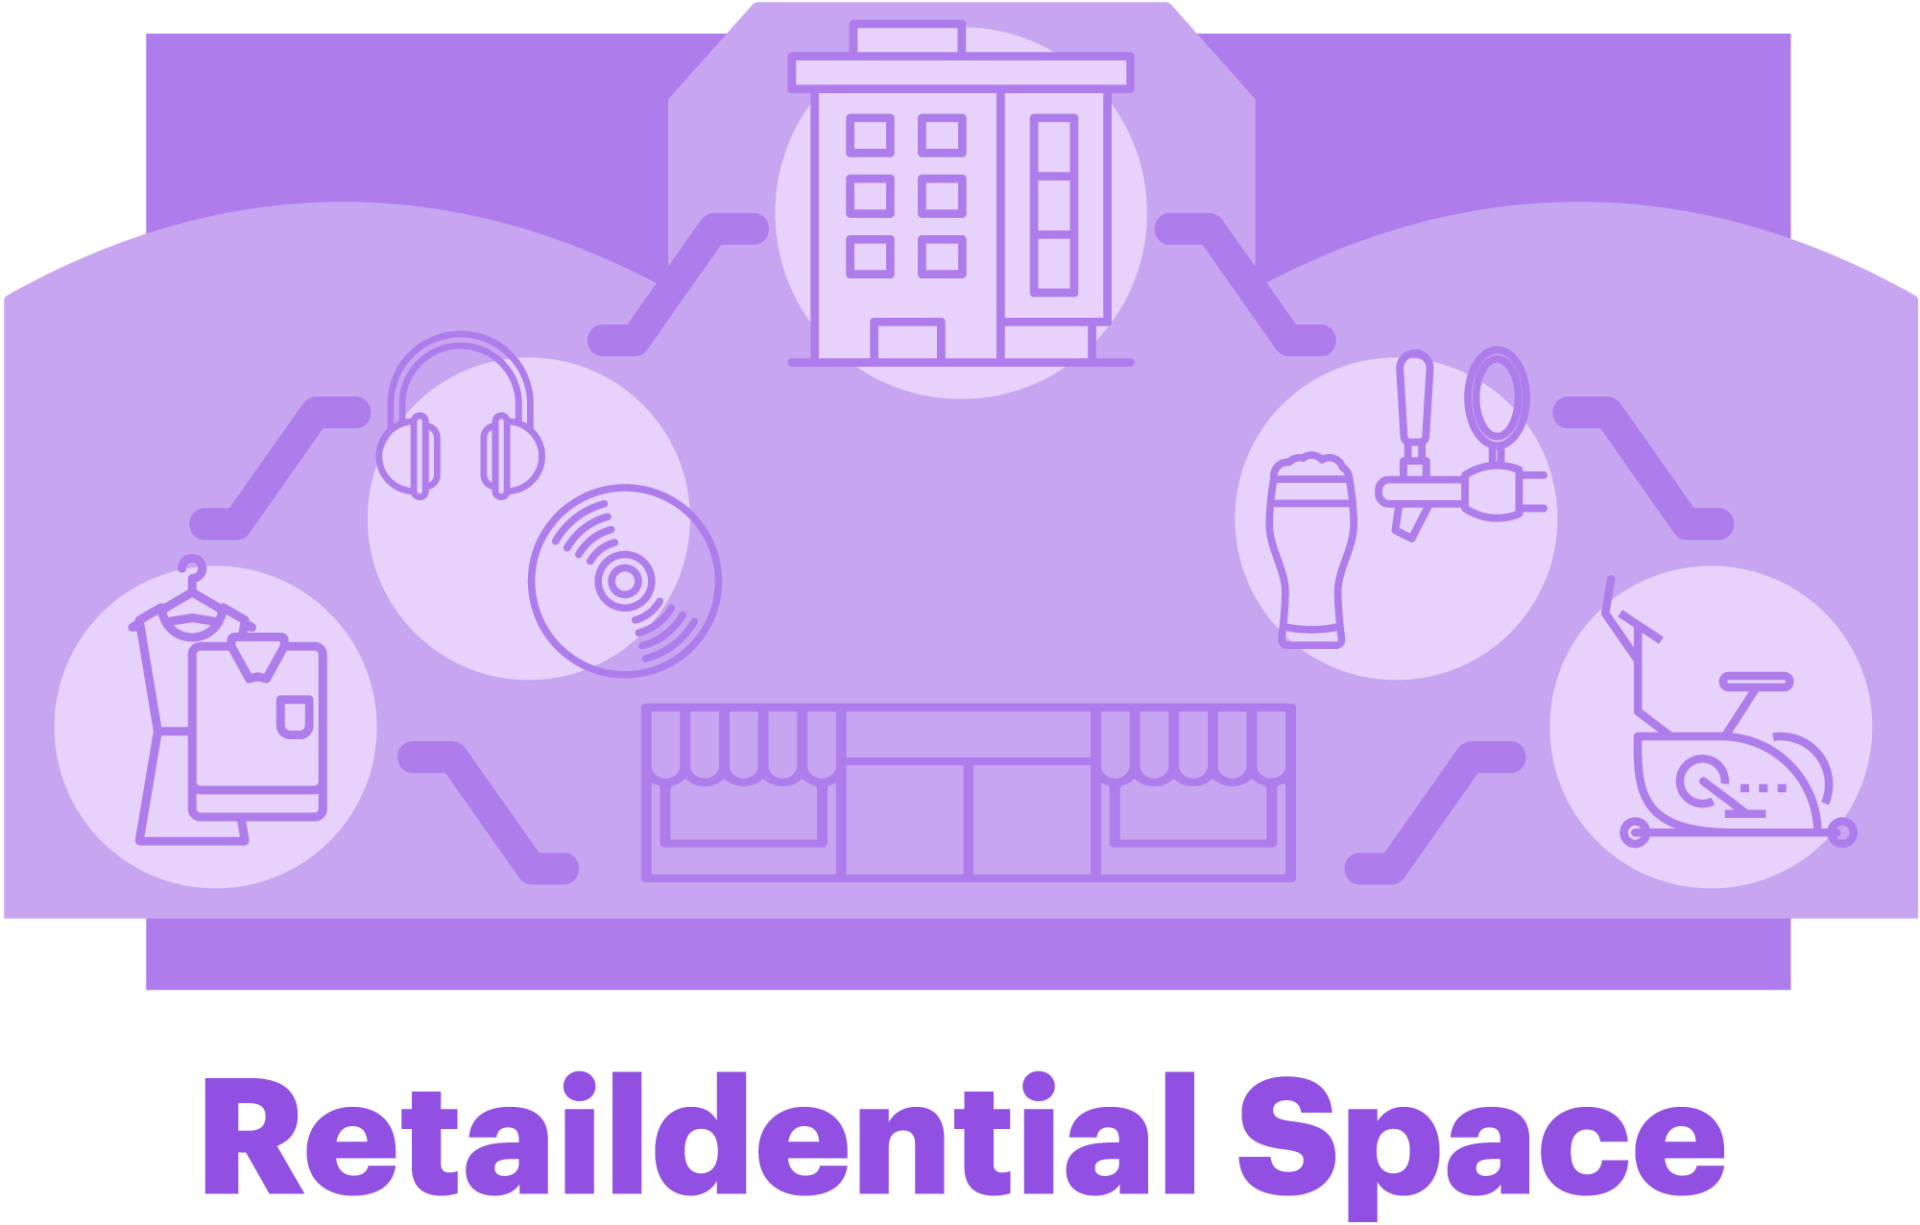 Future-of-Shopping-Centers-4-Retaildential-Space